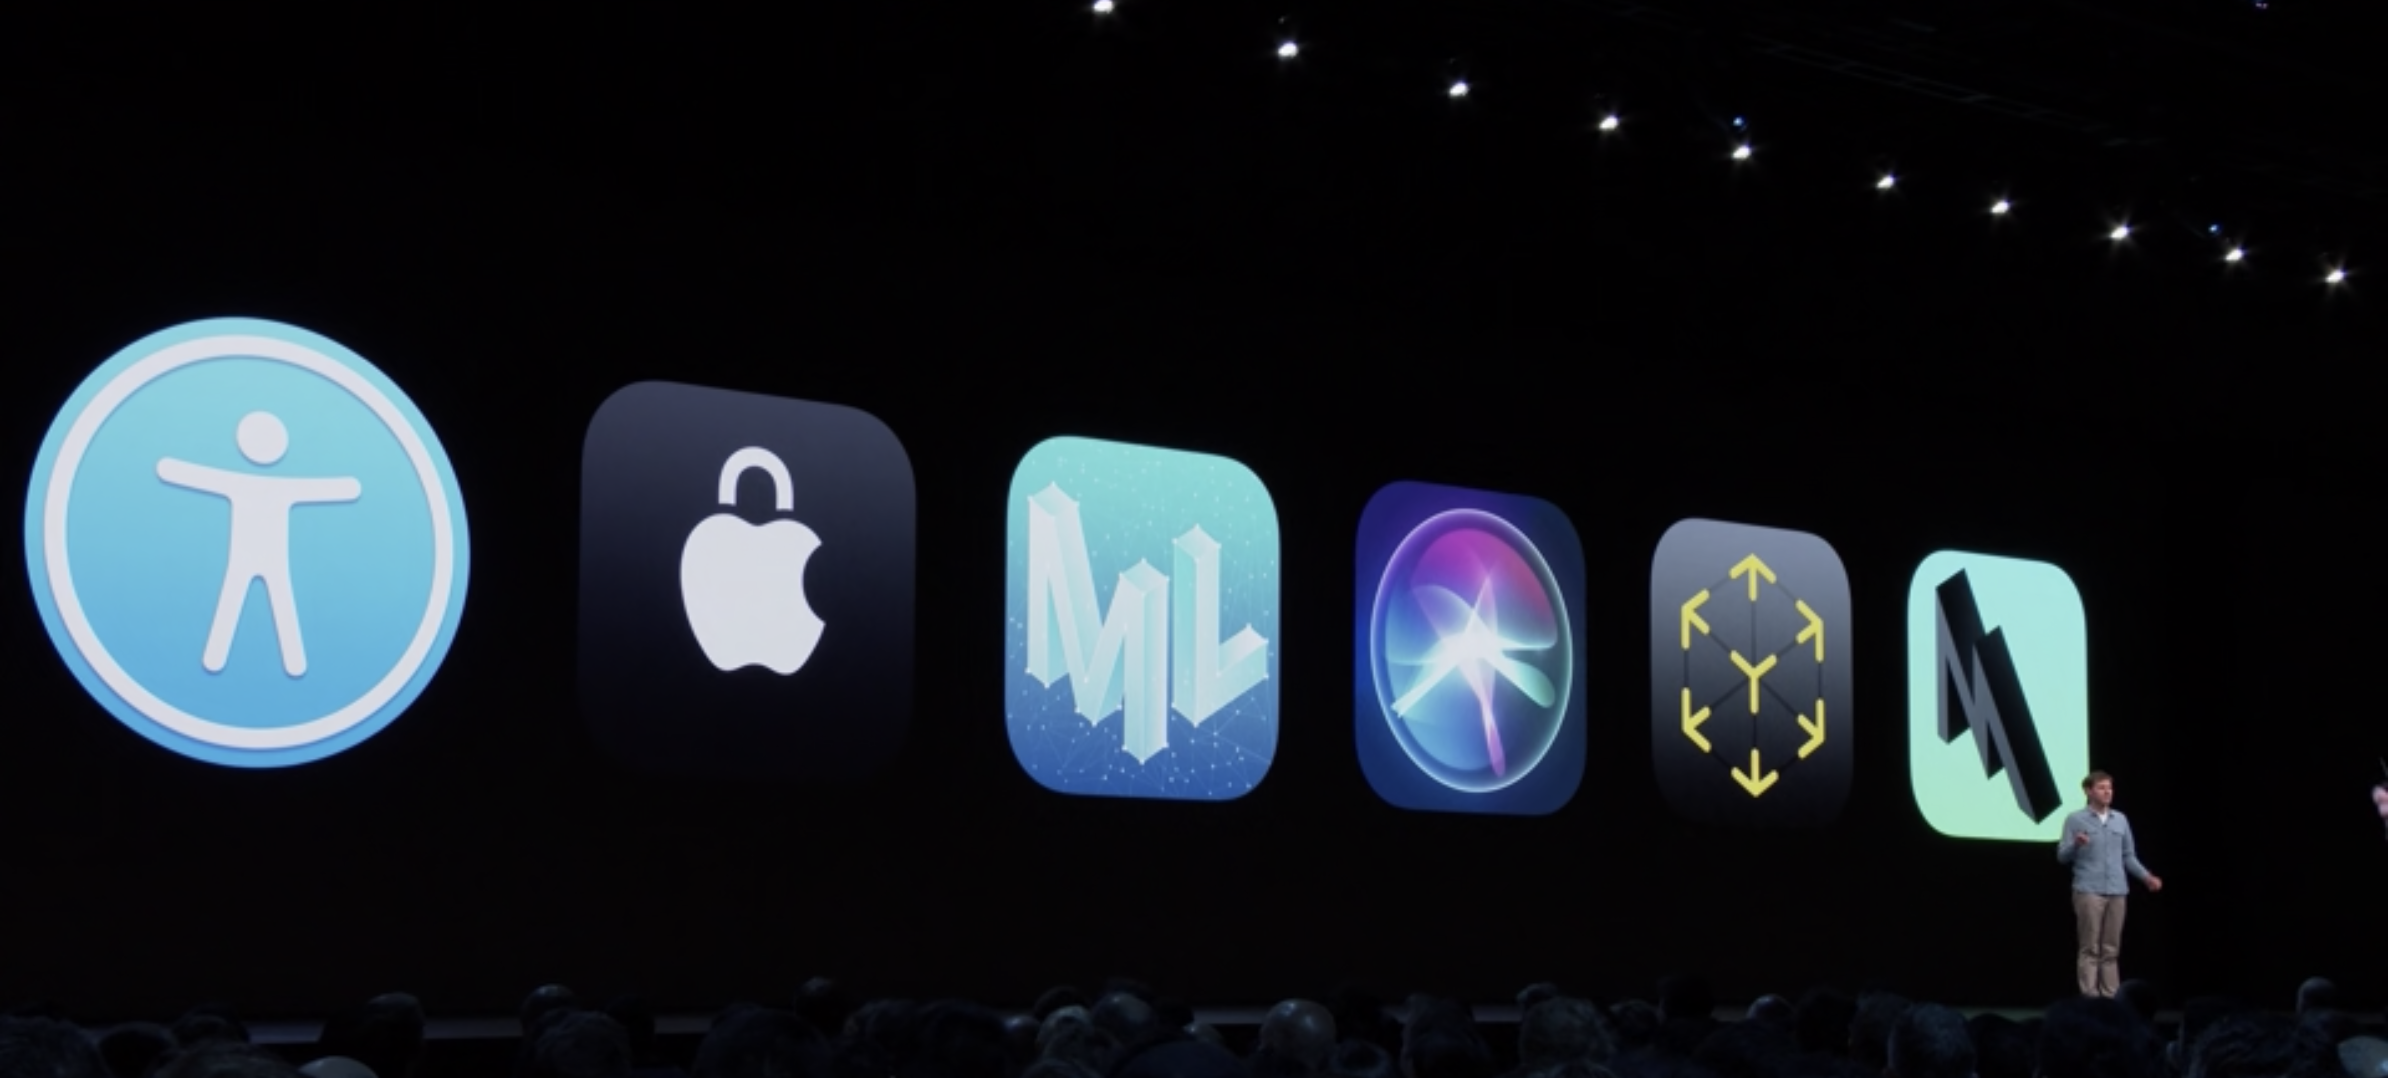 Photo from the Platforms State of the Union session in the WWDC 2019.